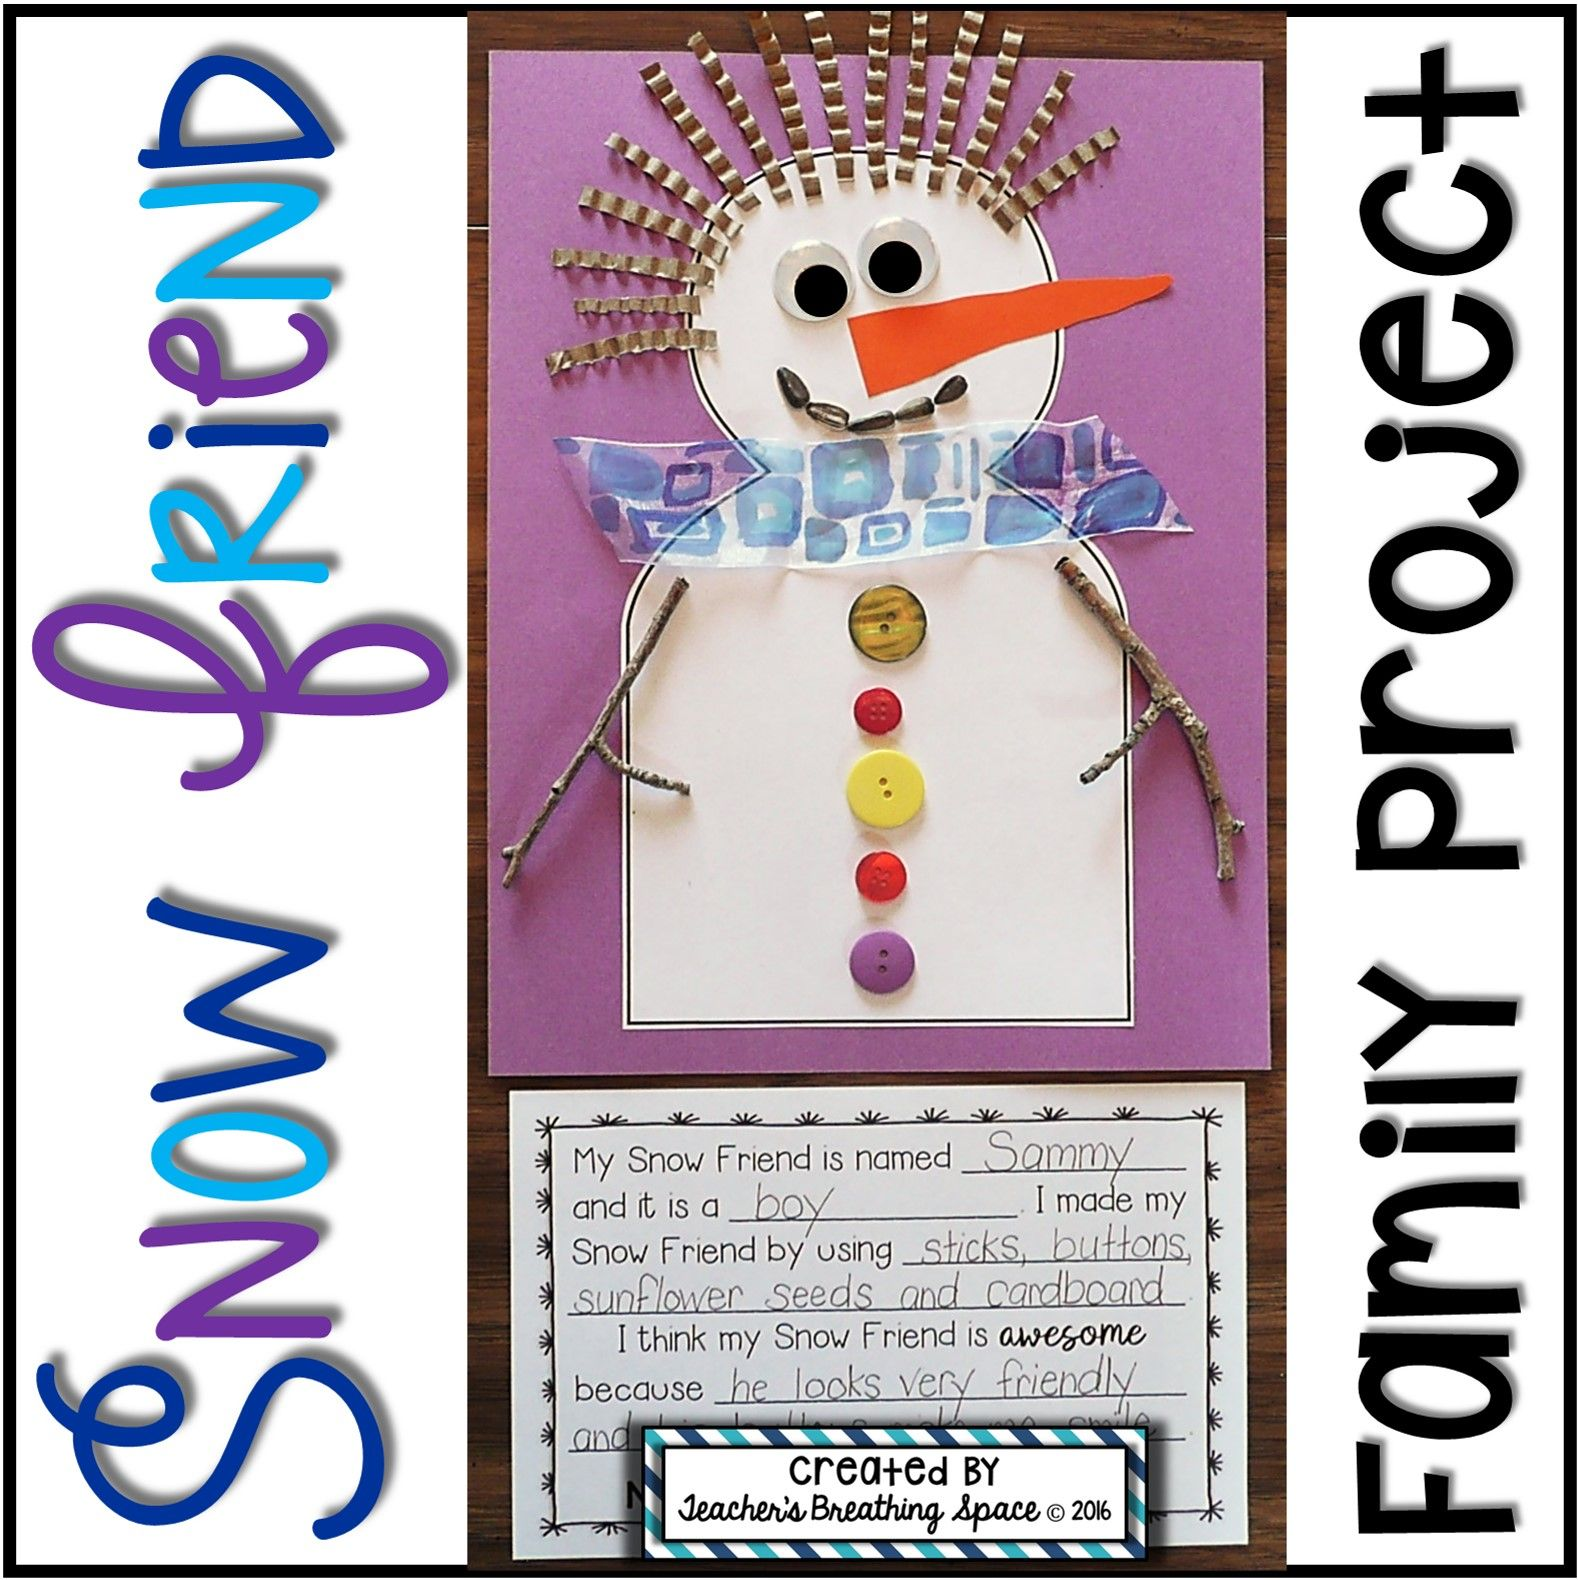 Snowman Family Project Snowman Craftivity Based On Snowballs By